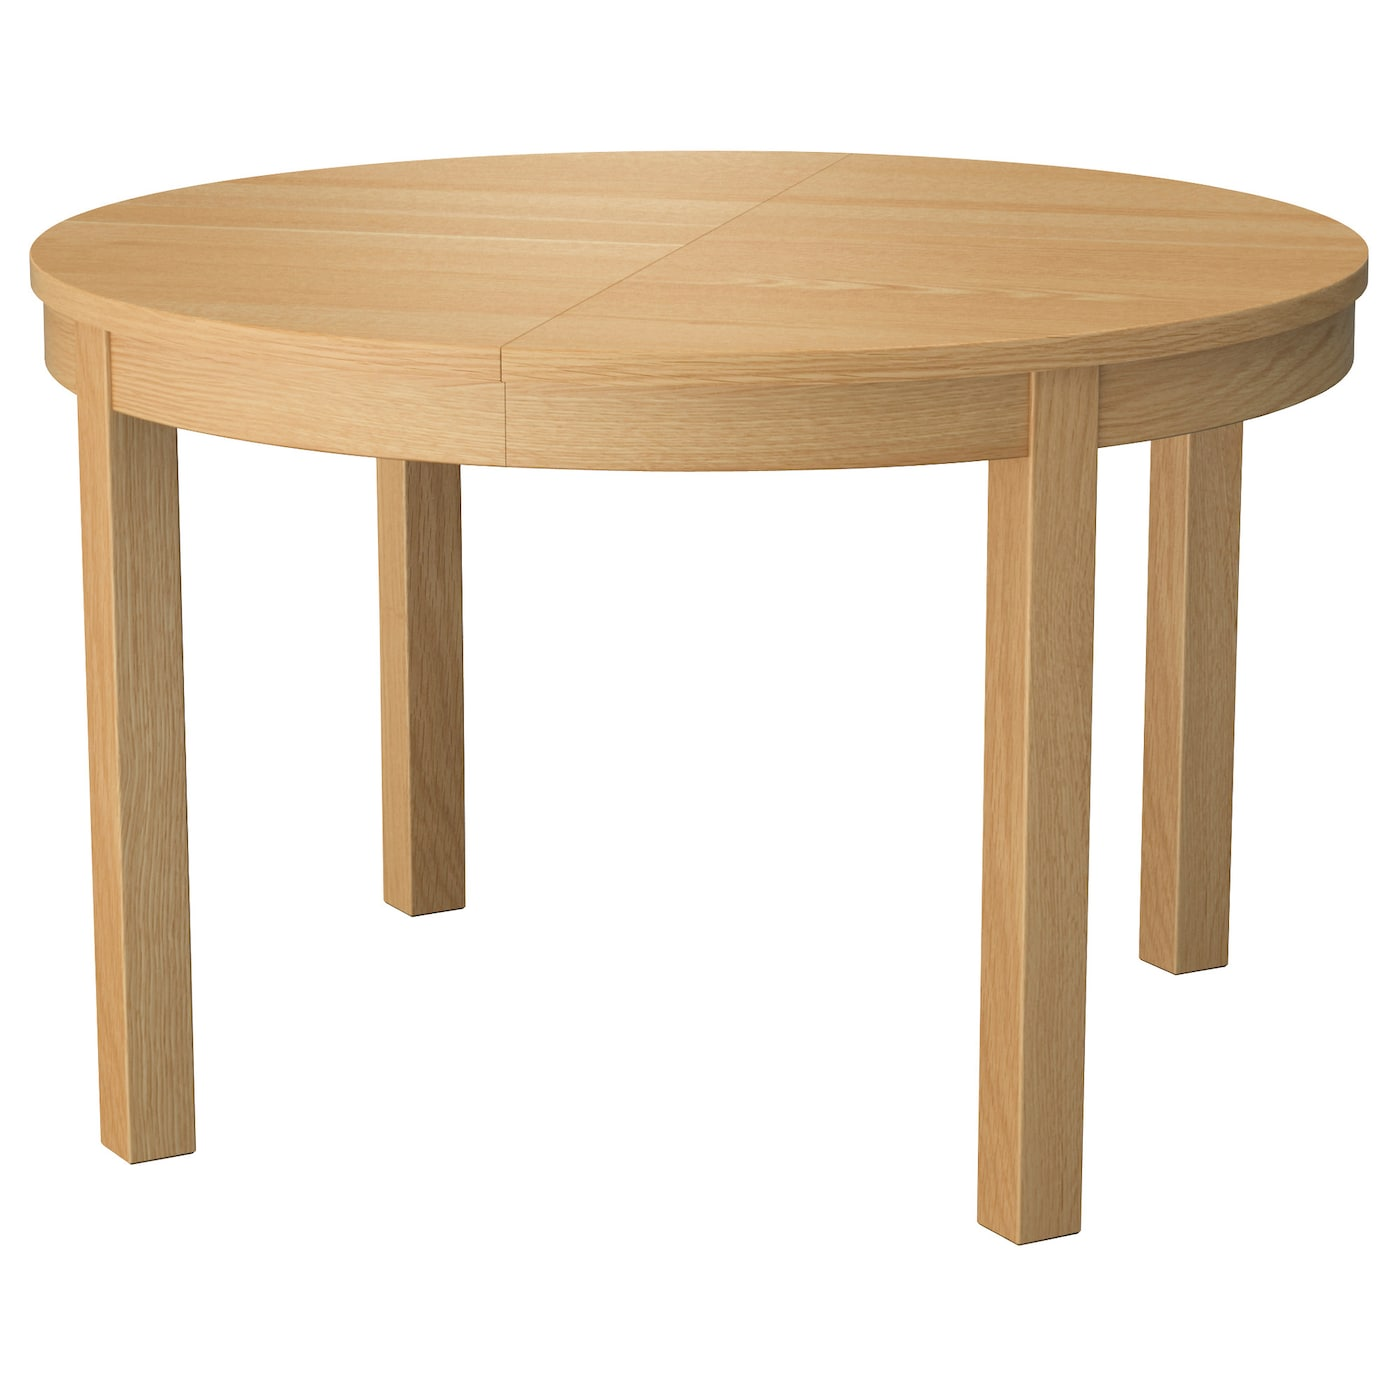 Ikea Breakfast Table: Round Dining Tables